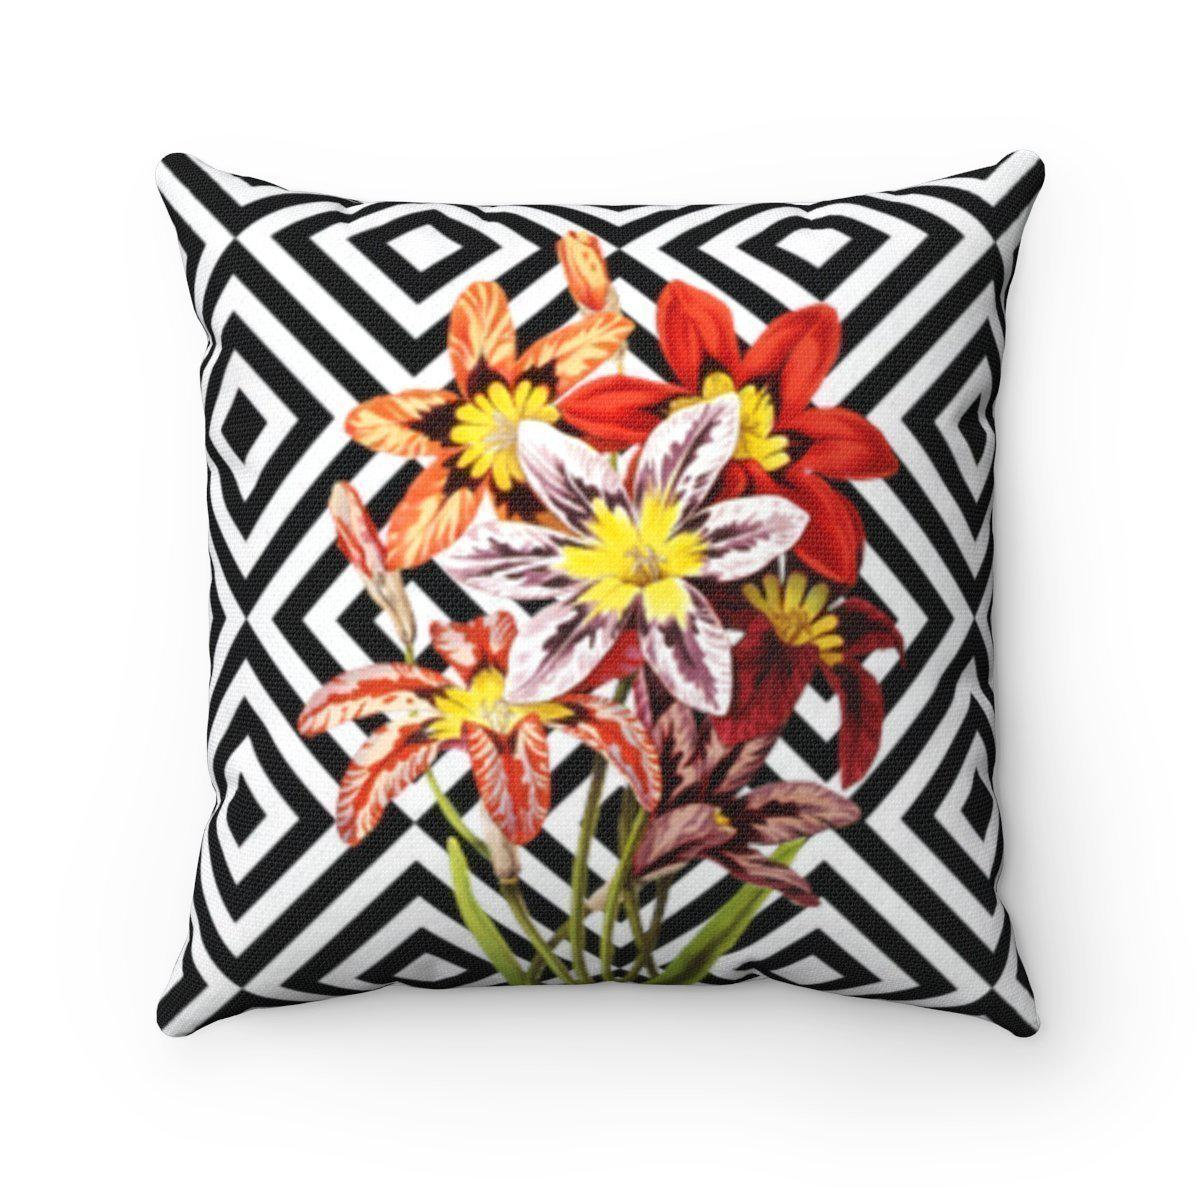 Luxury Floral abstract decorative cushion cover-Home Decor - Decorative Accents - Pillows & Throws - Decorative Pillows-Maison d'Elite-Très Elite